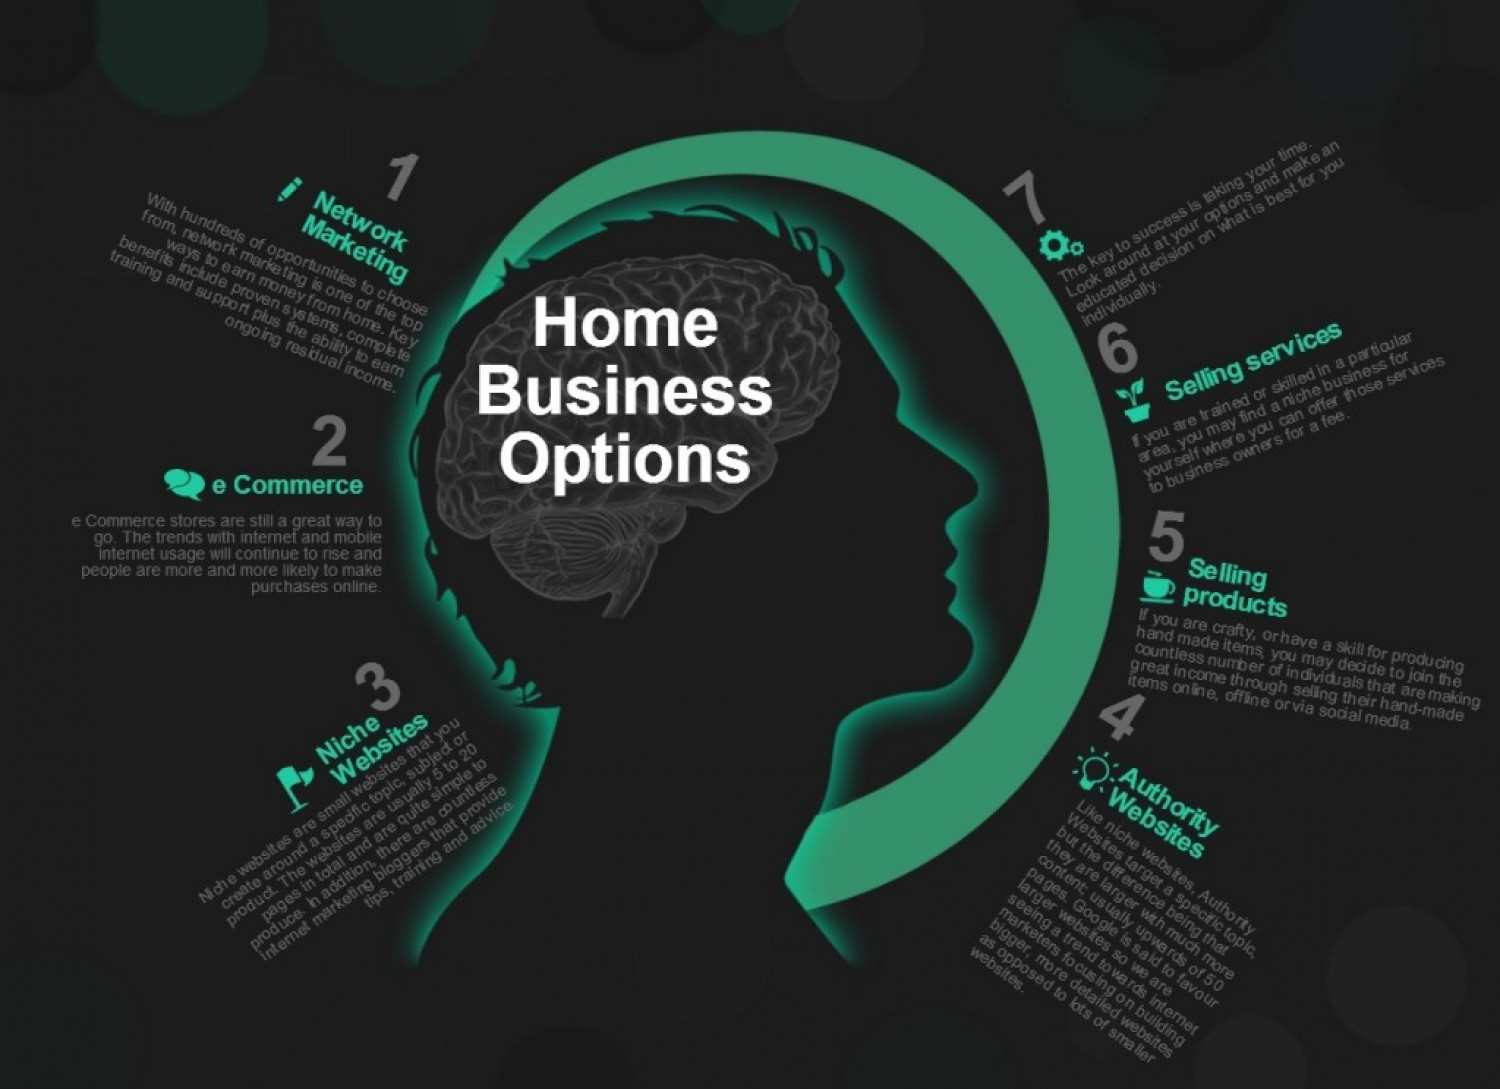 Home Based Business Opportunities Infographic